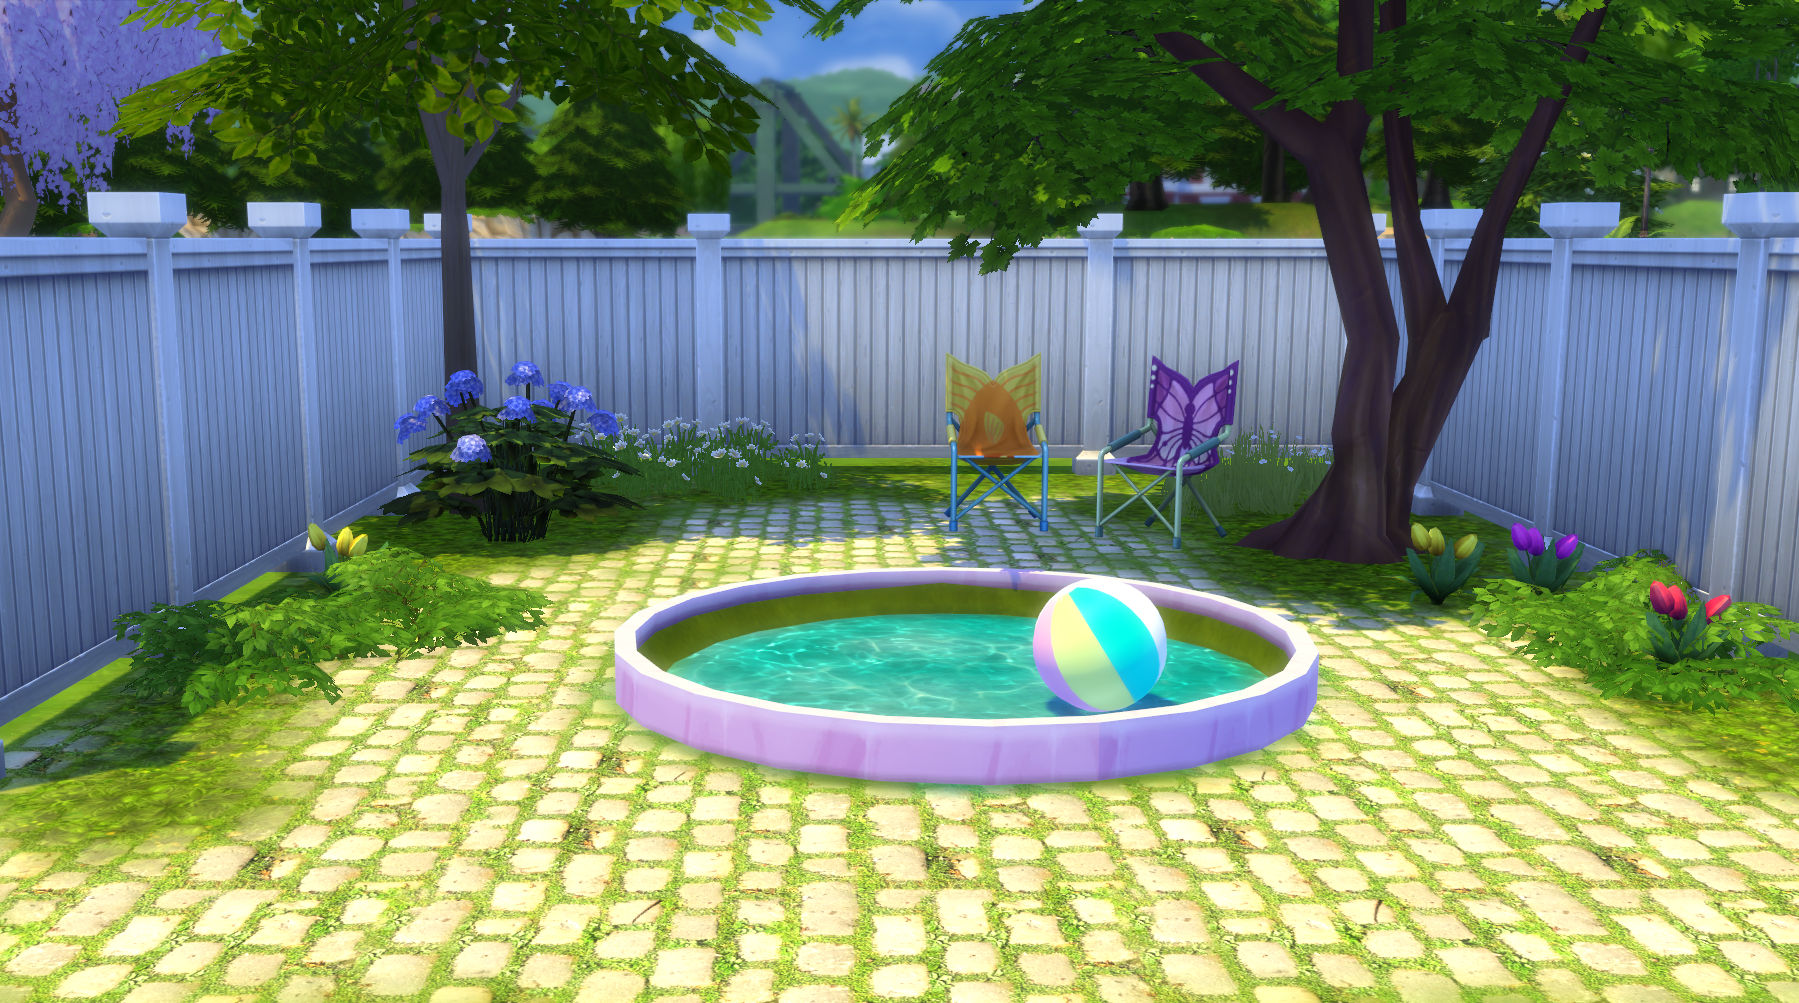 Pool Bauen Sims 3 Mod The Sims On The Curve Circular And Oval Flowerbeds